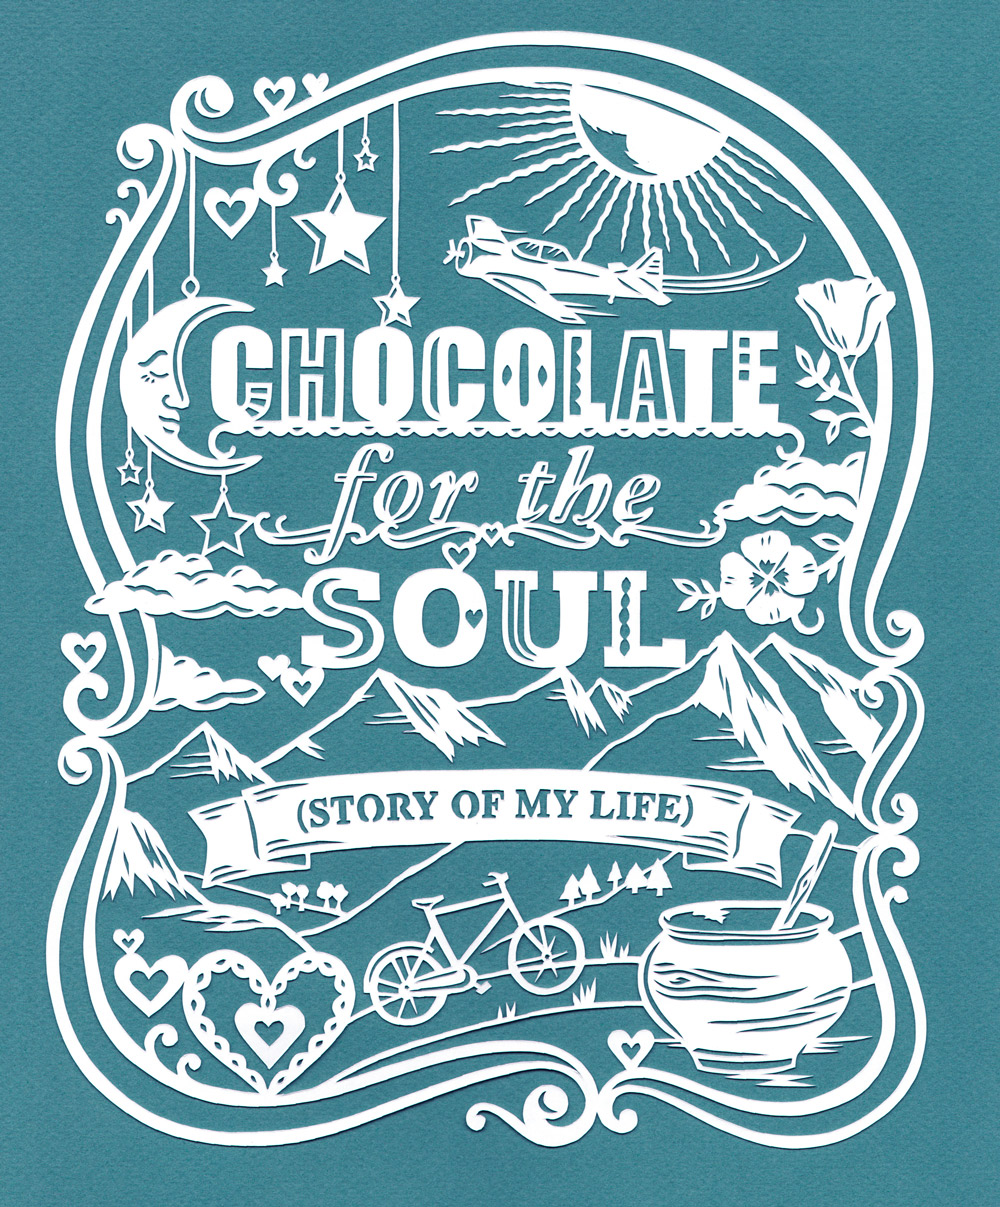 papercut-illustration-chocolate-nature